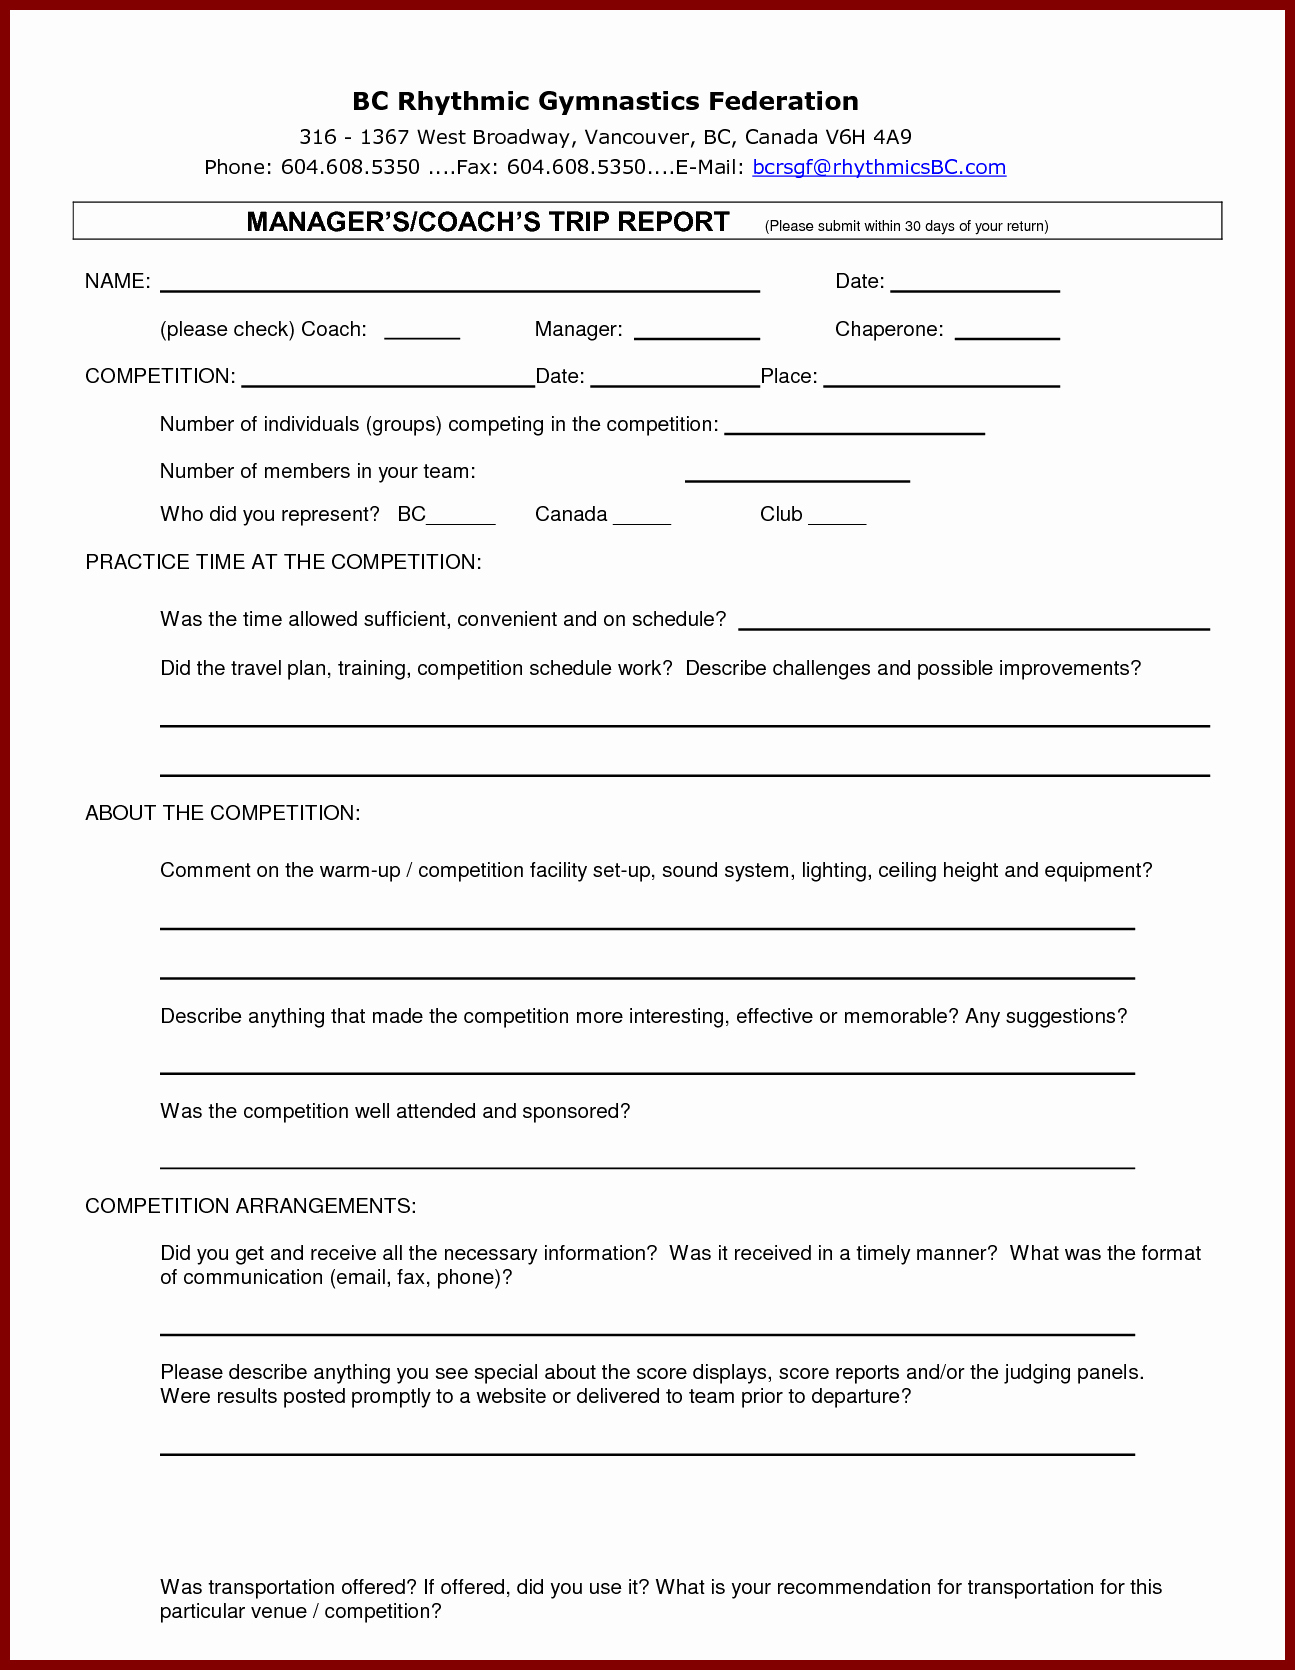 Customer Visit Report Template Free Download for Sound Report Template